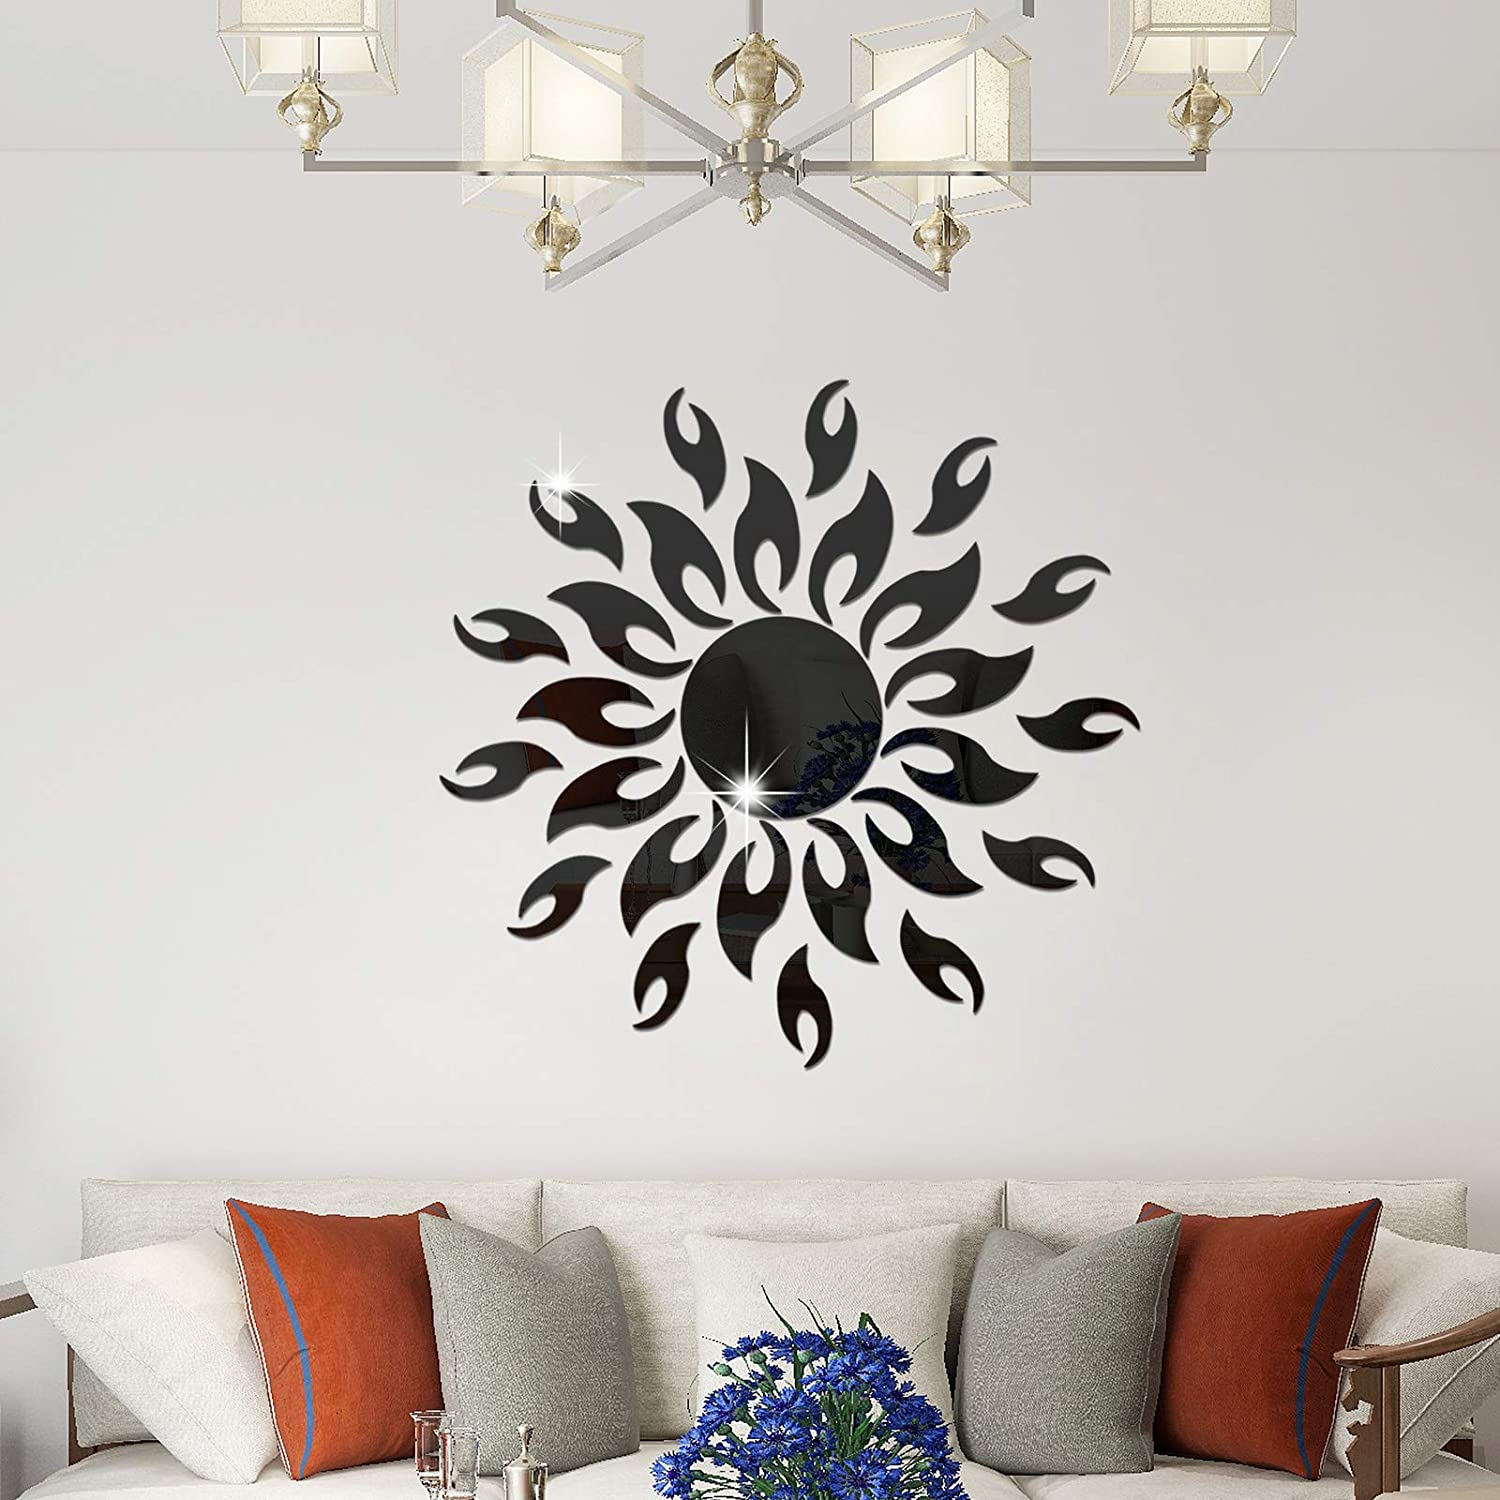 RW-001 3D Sun Flower Mirror Wall Stickers Acrylic Mirror Wall Decals DIY Removable Sun Pattern Modern Mirror Surface Wall Decor for Bedroom Living Room Office TV Background Home Decoration (Black)